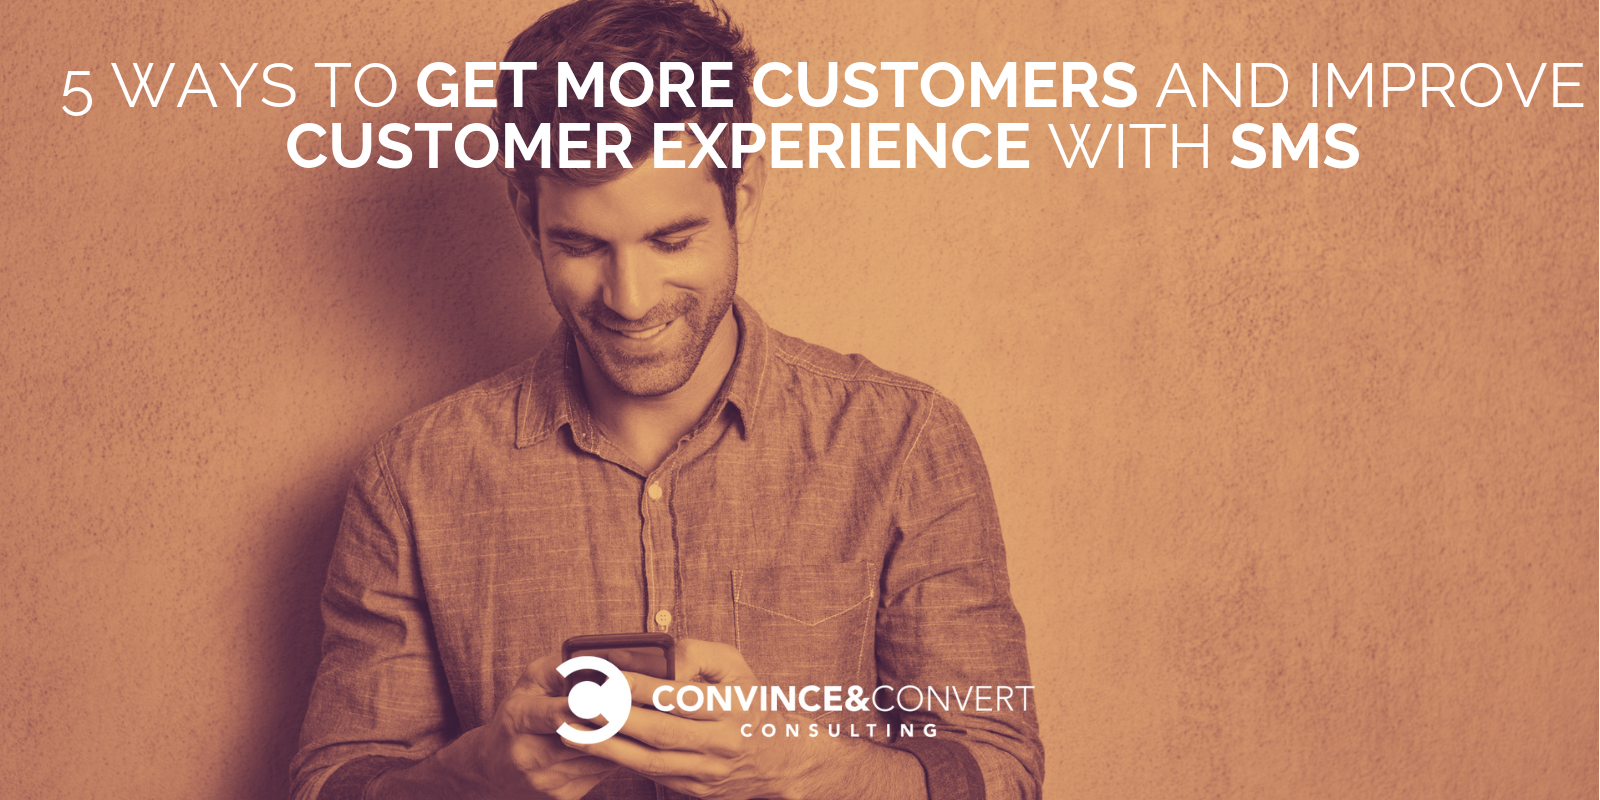 5 Ways to Get More Customers with SMS